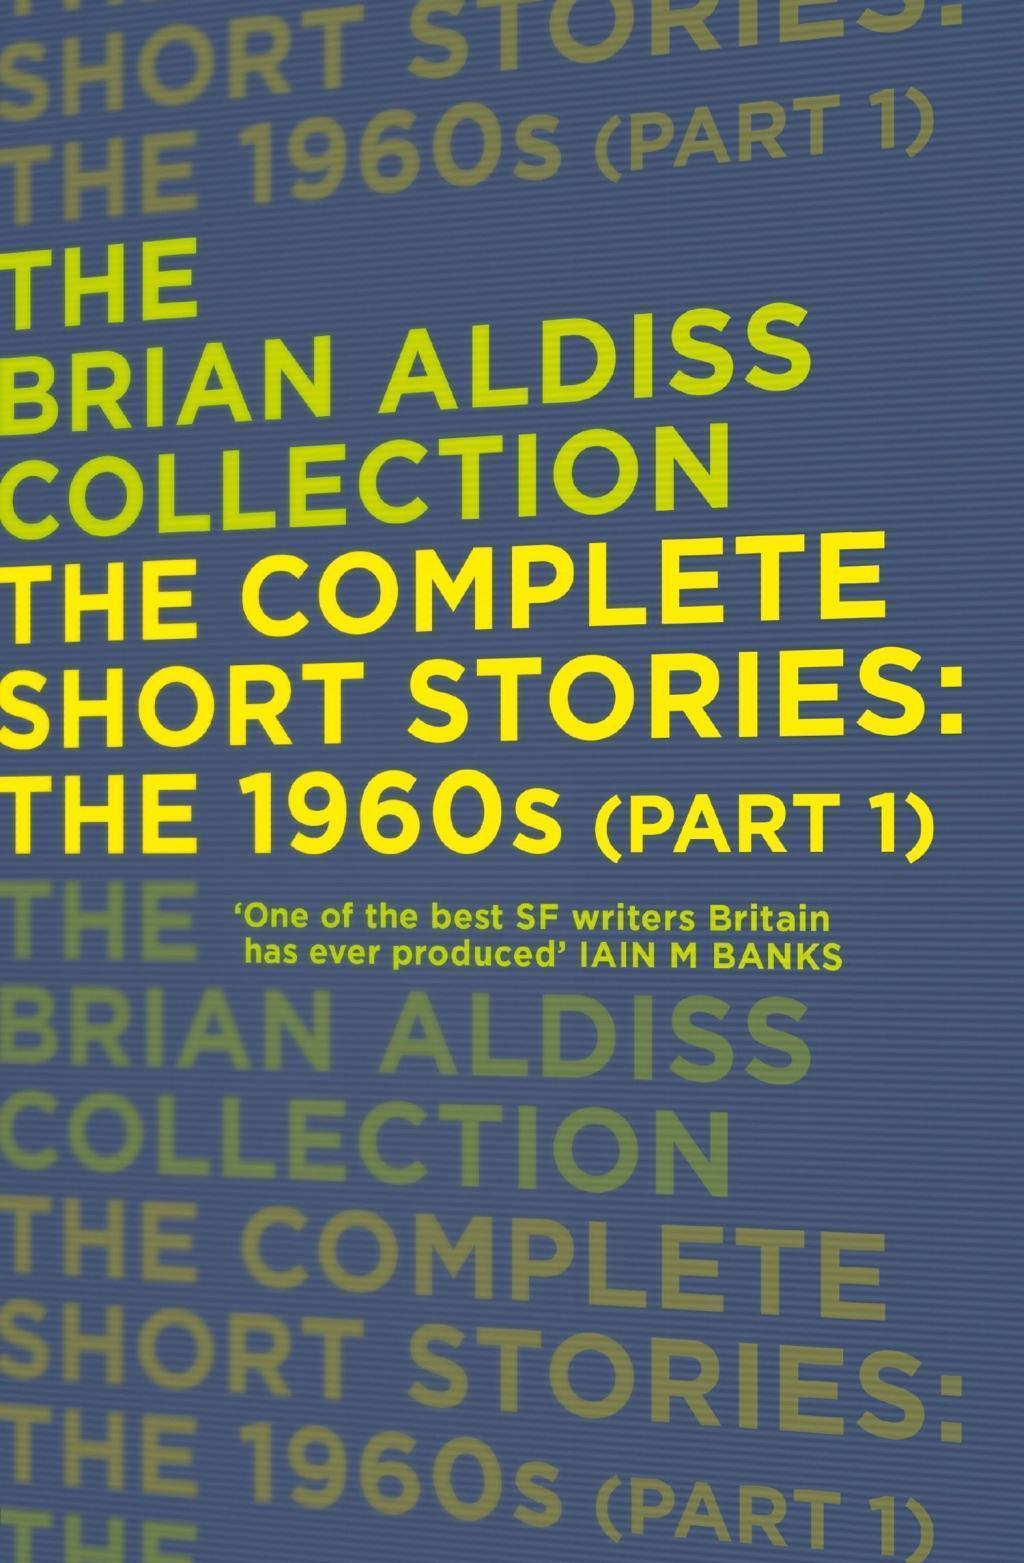 The Complete Short Stories: The 1960s (Part 1) (The Brian Aldiss Collection)